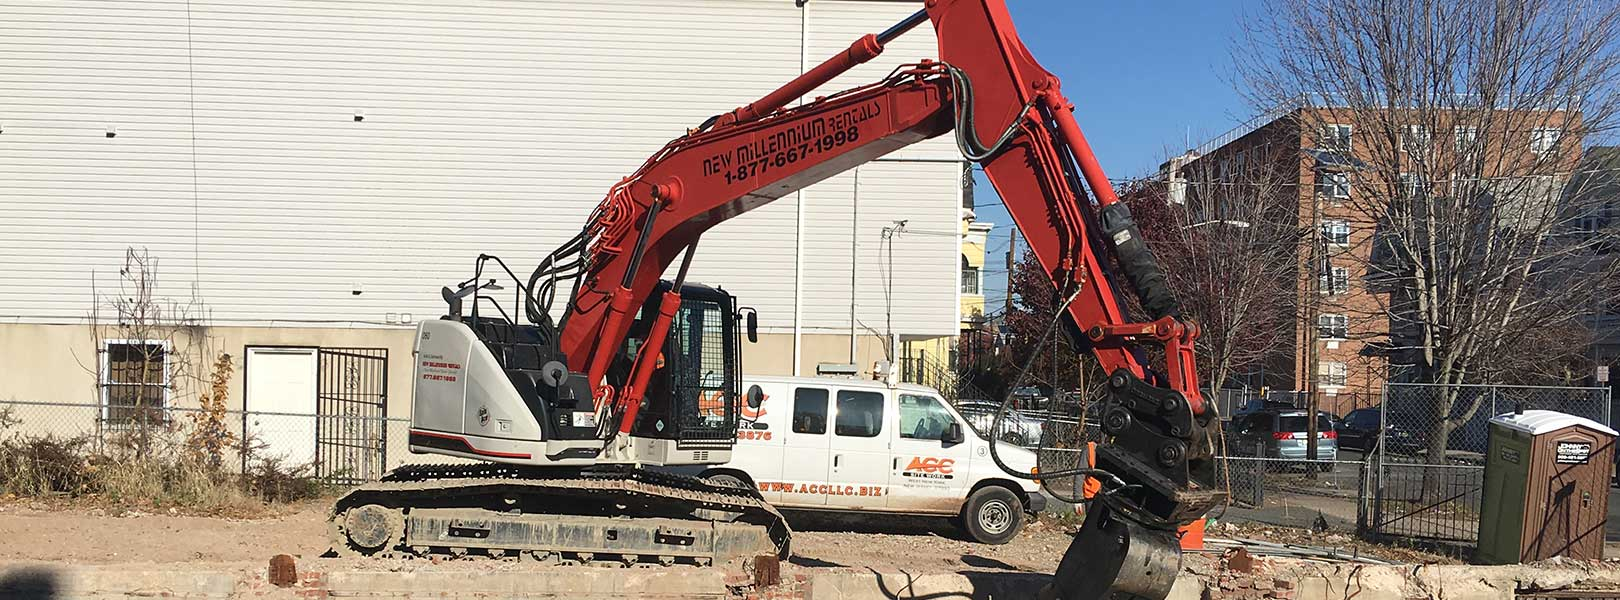 Linkbelt excavator with shear